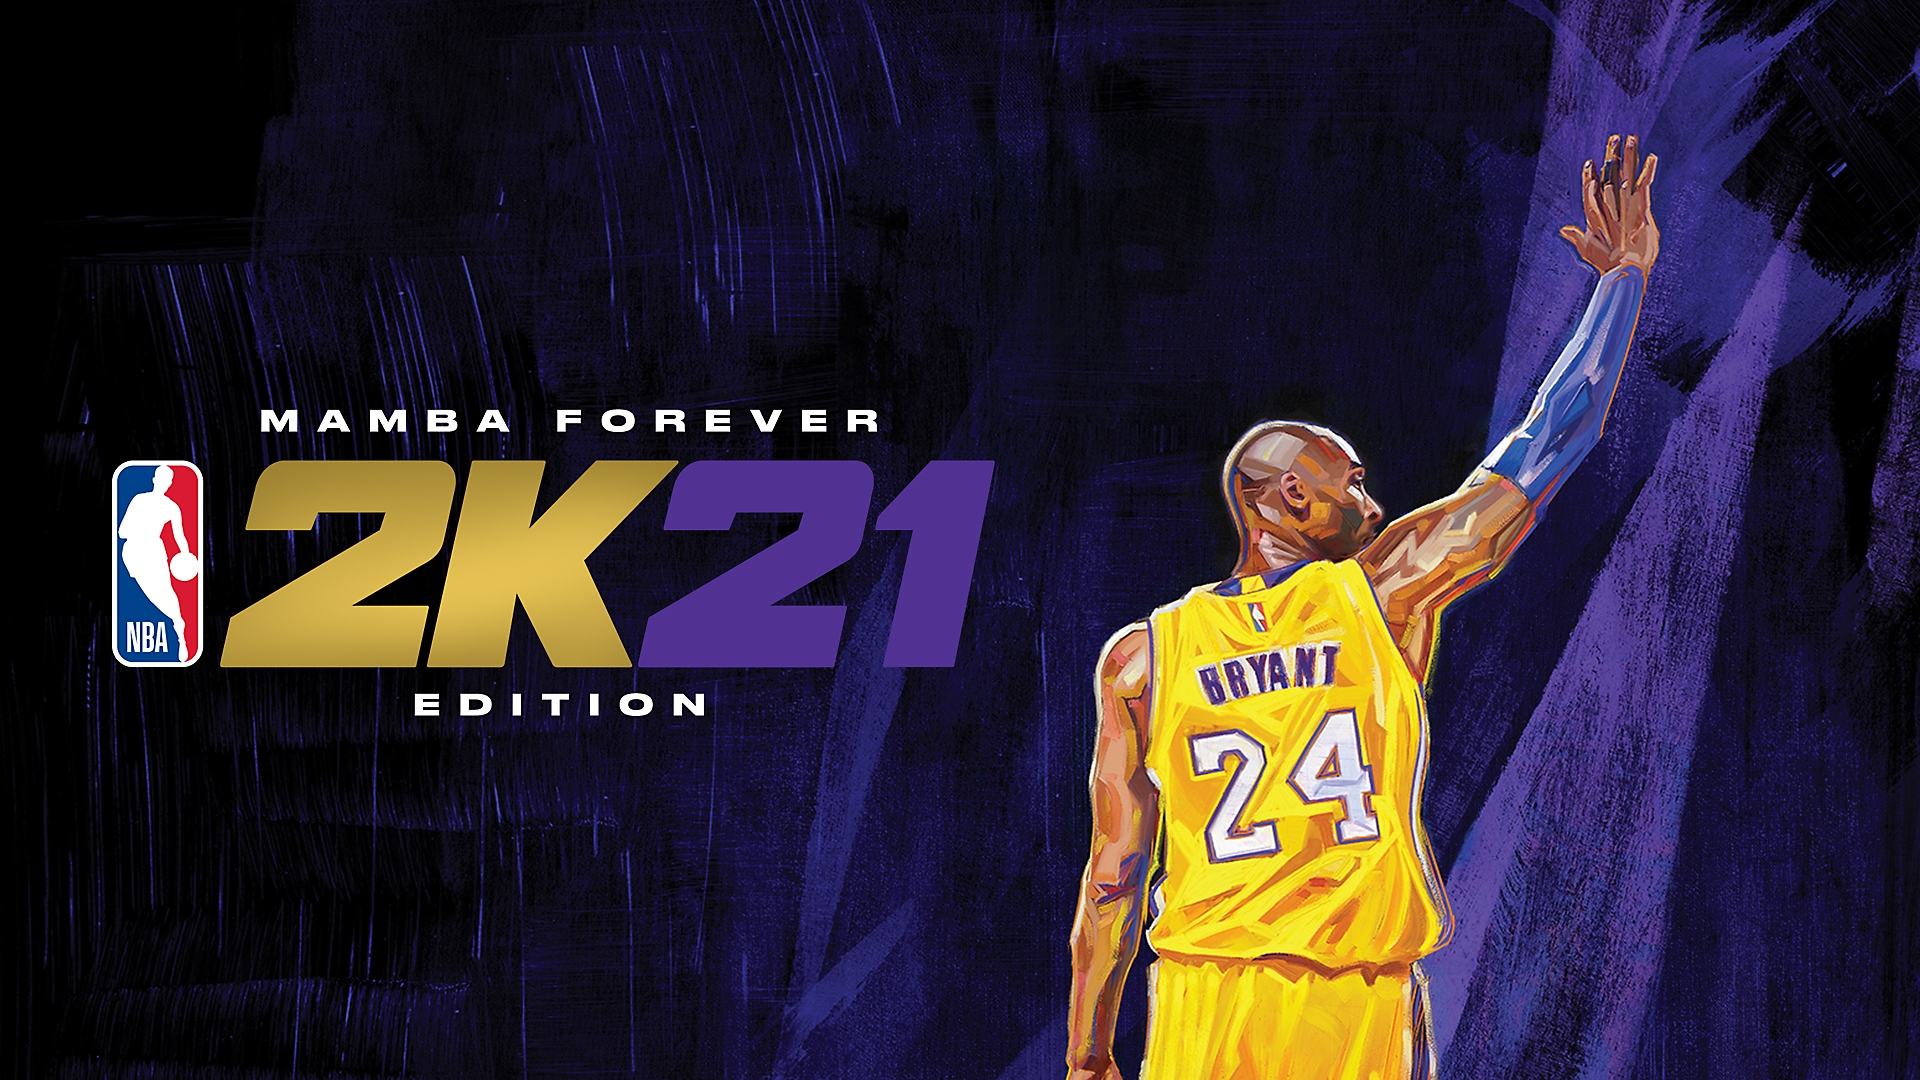 NBA 2K21 Mamba Edition key art